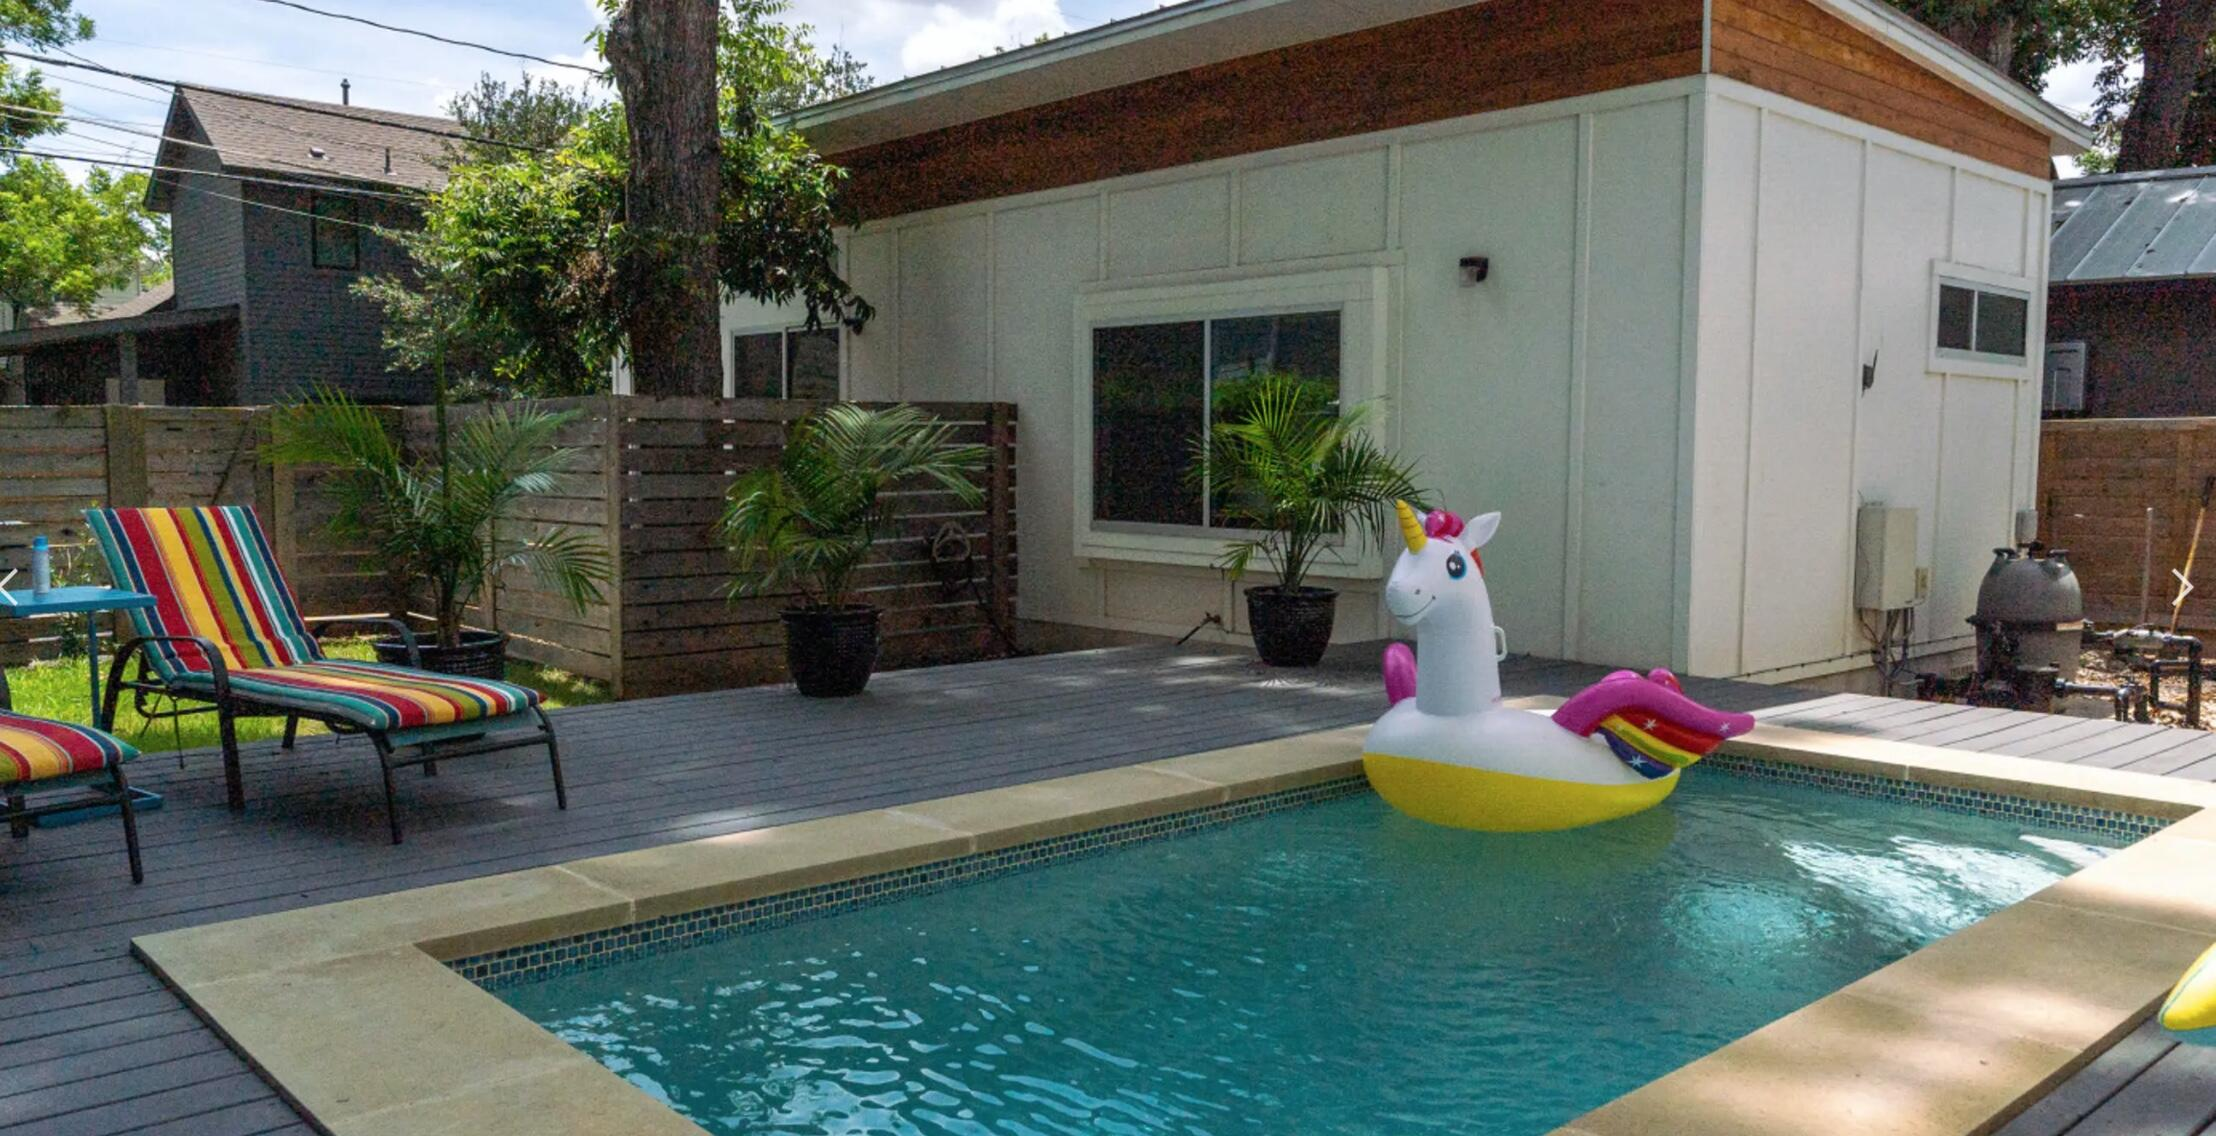 Swimming pool with a unicorn floatie